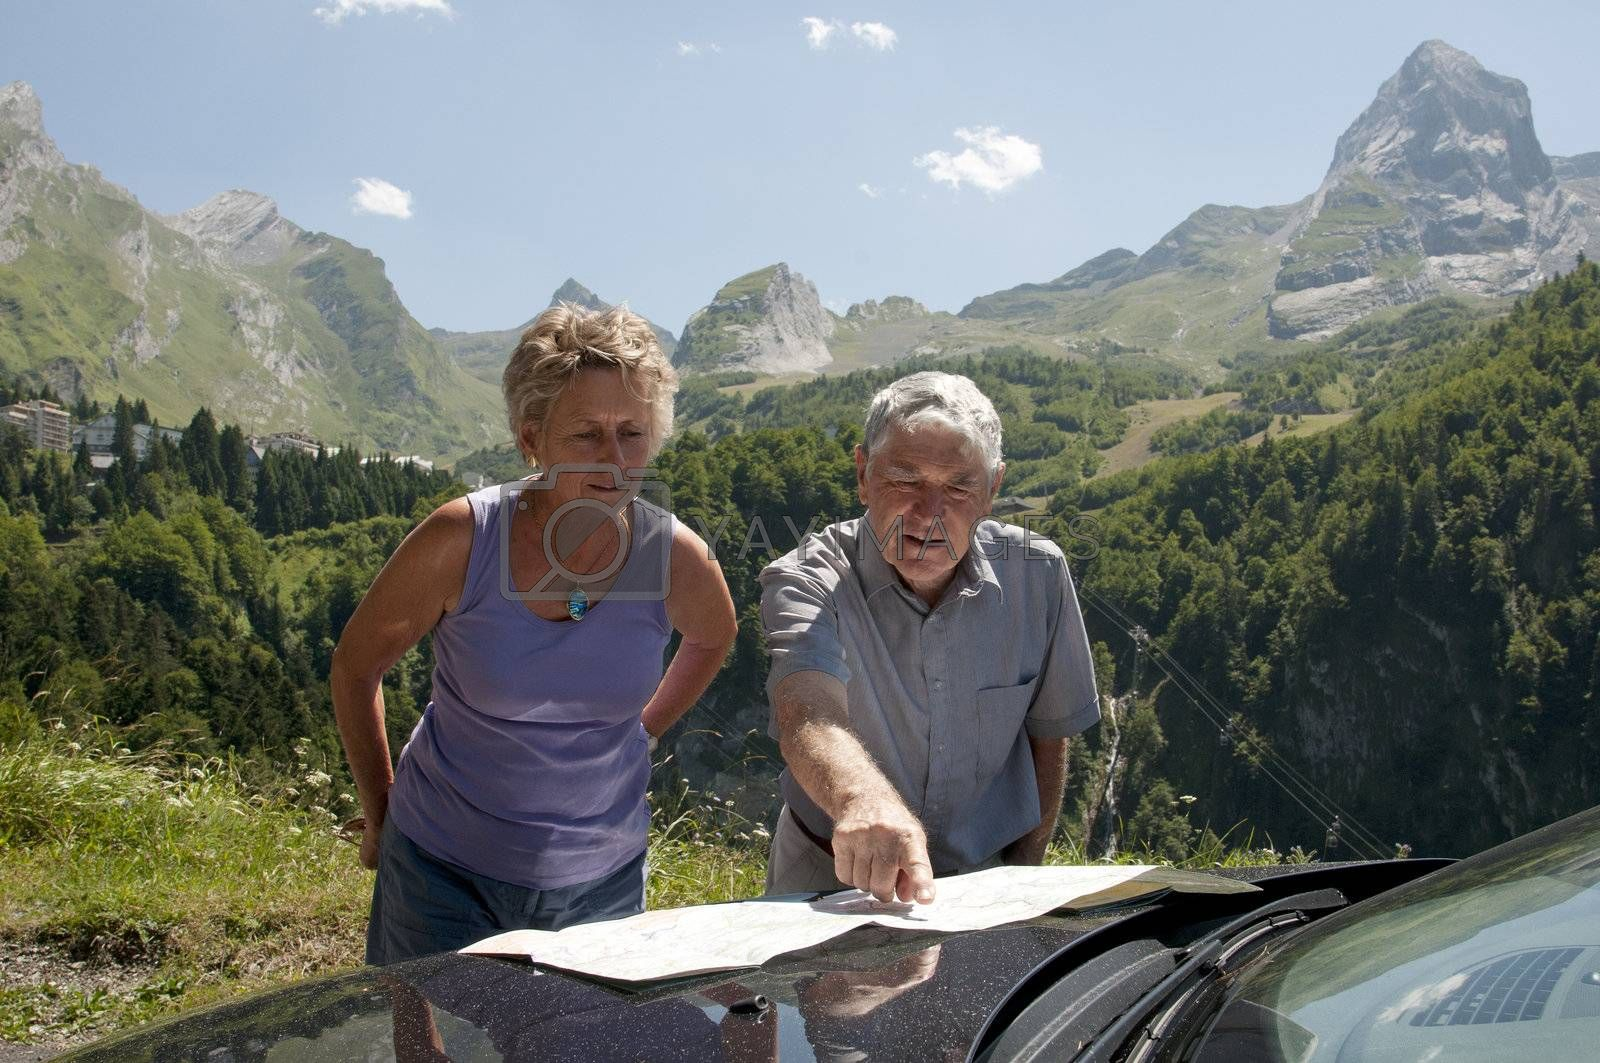 Motorists map reading with a backdrop of the Pyrenees Mountains South West France